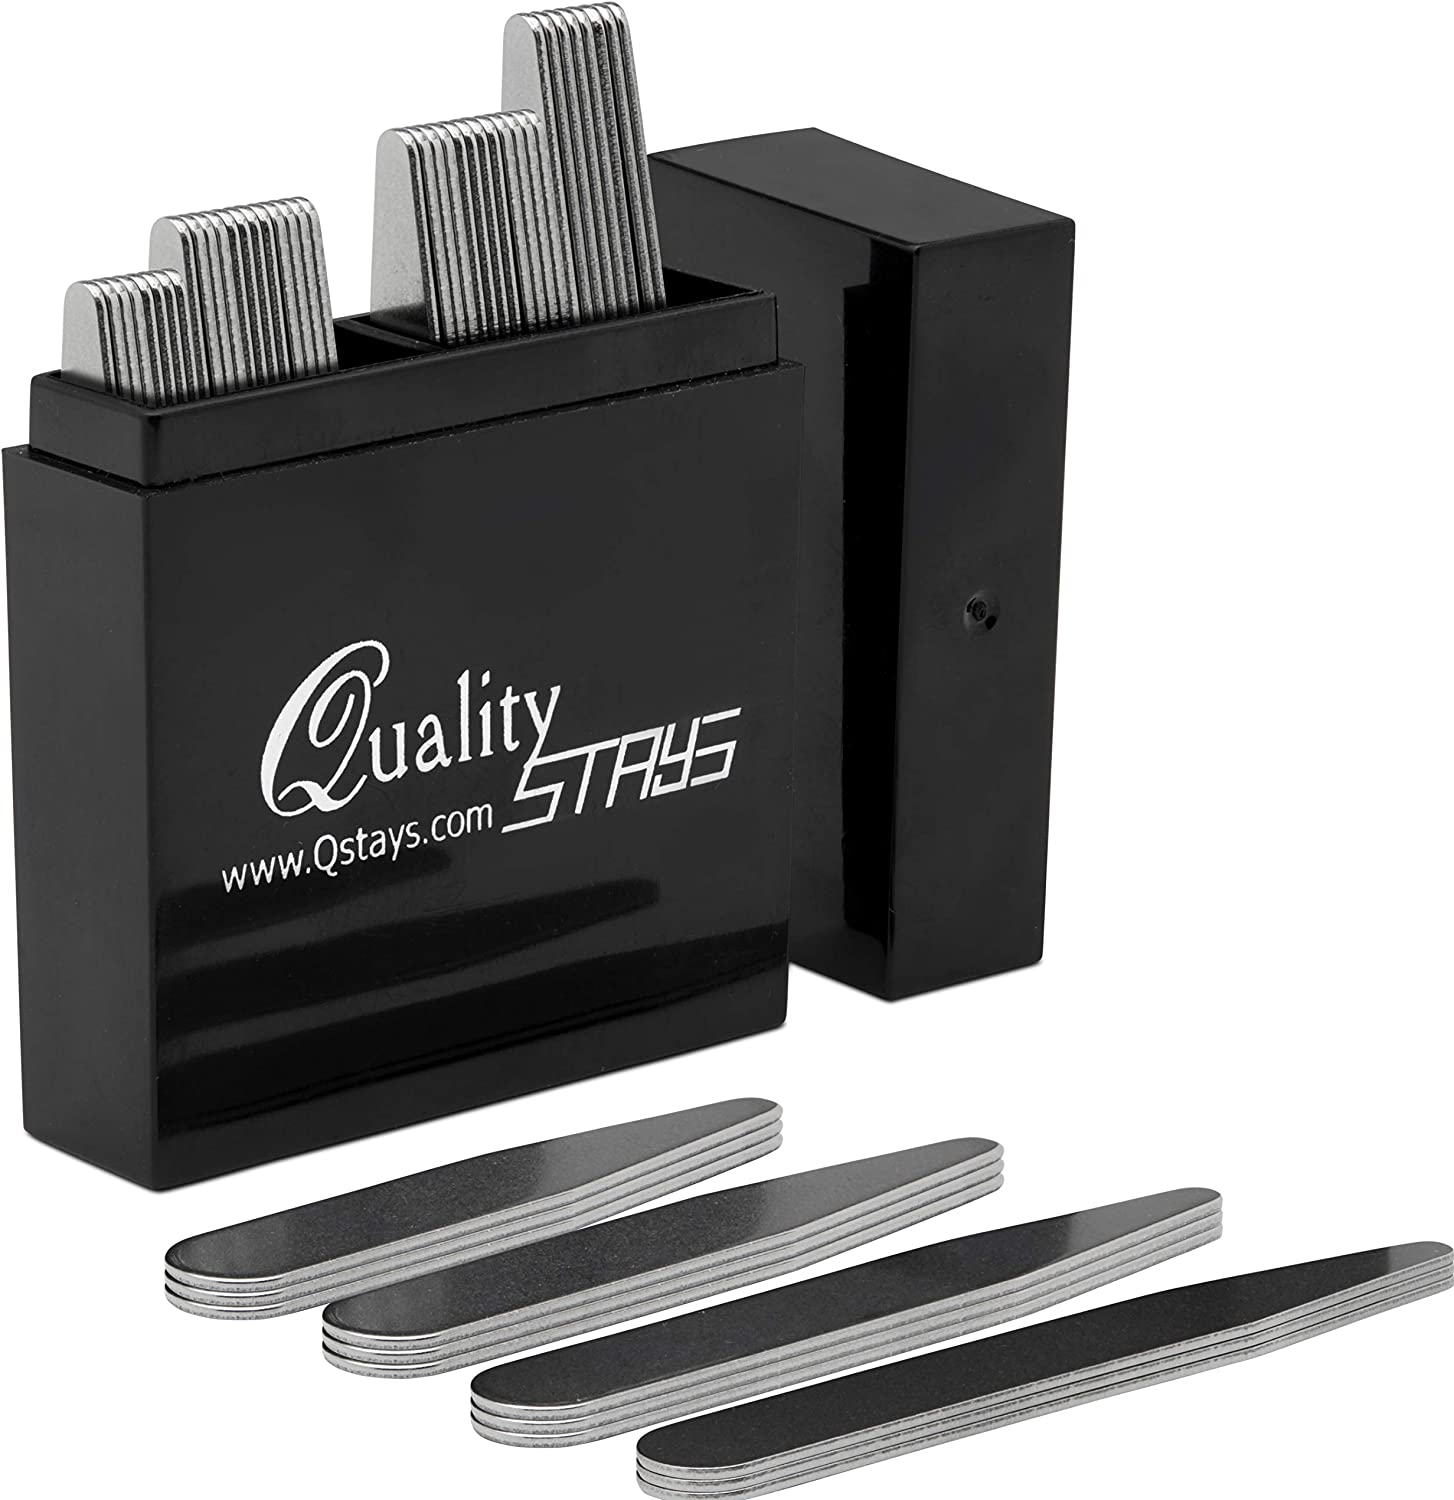 40 Metal Collar Stays- 4 Sizes in a Box for Men